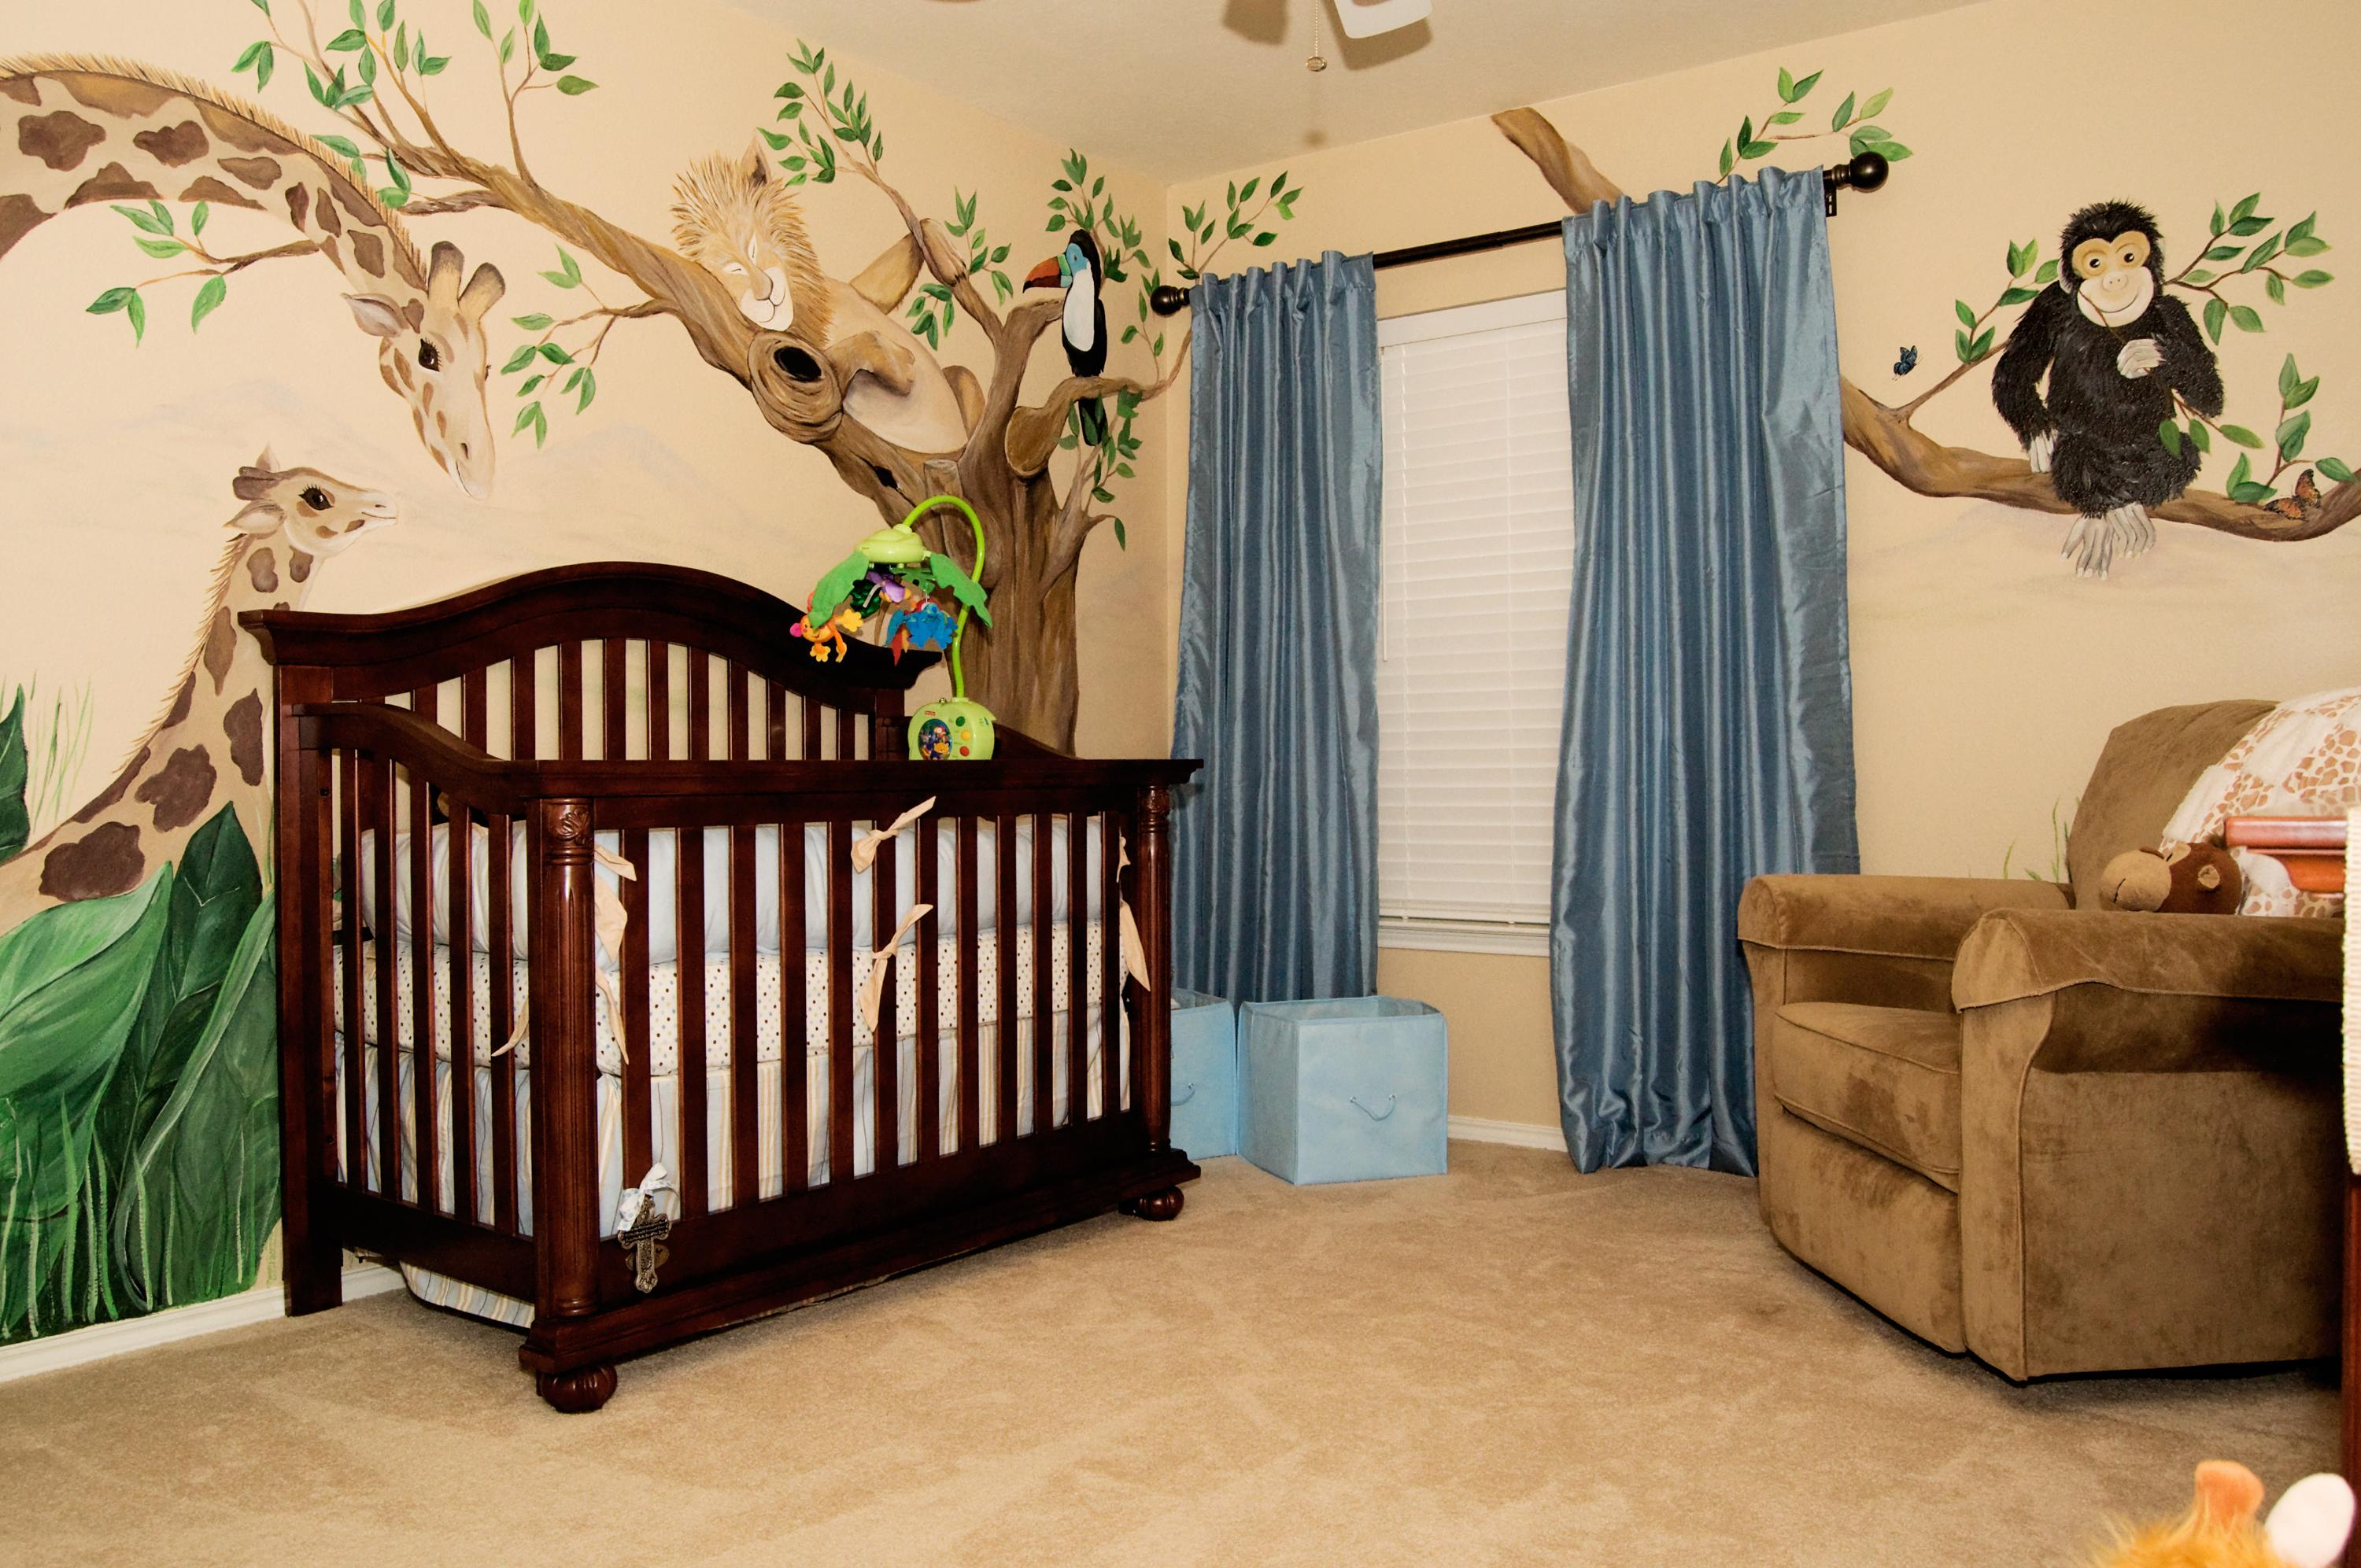 and accessories boys oration for bedding pooh sheet designs rooms sets your skirt net winnie gopelling crib room curtain the good loversiq cot duvet curtains cute linen nursery deer ideas baby set boy own design designer